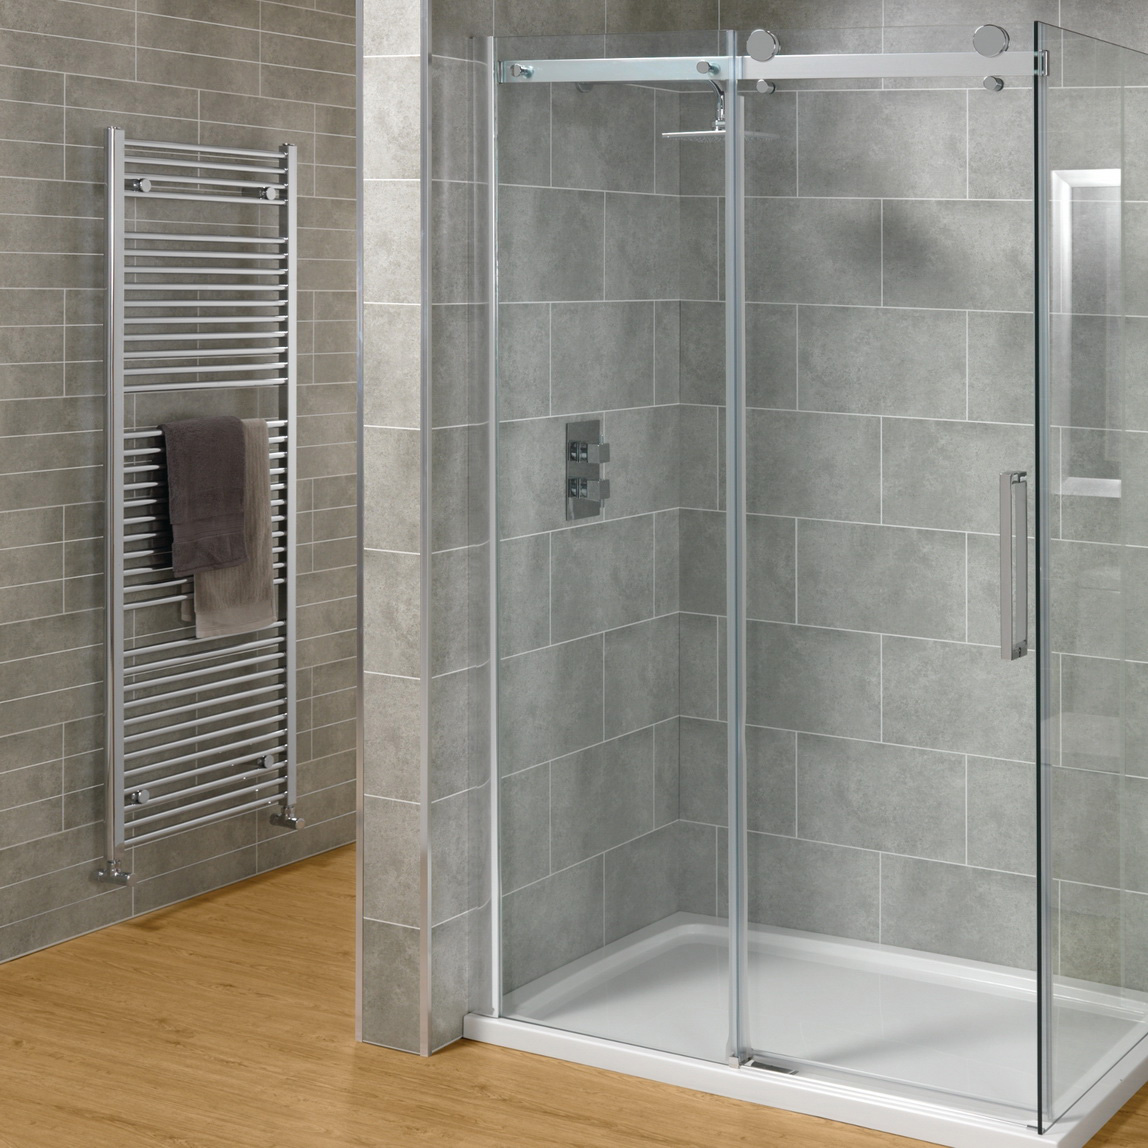 Creative fiberglass shower enclosure featured cntemporary shower doors glass frameless bathroom decorating ideas